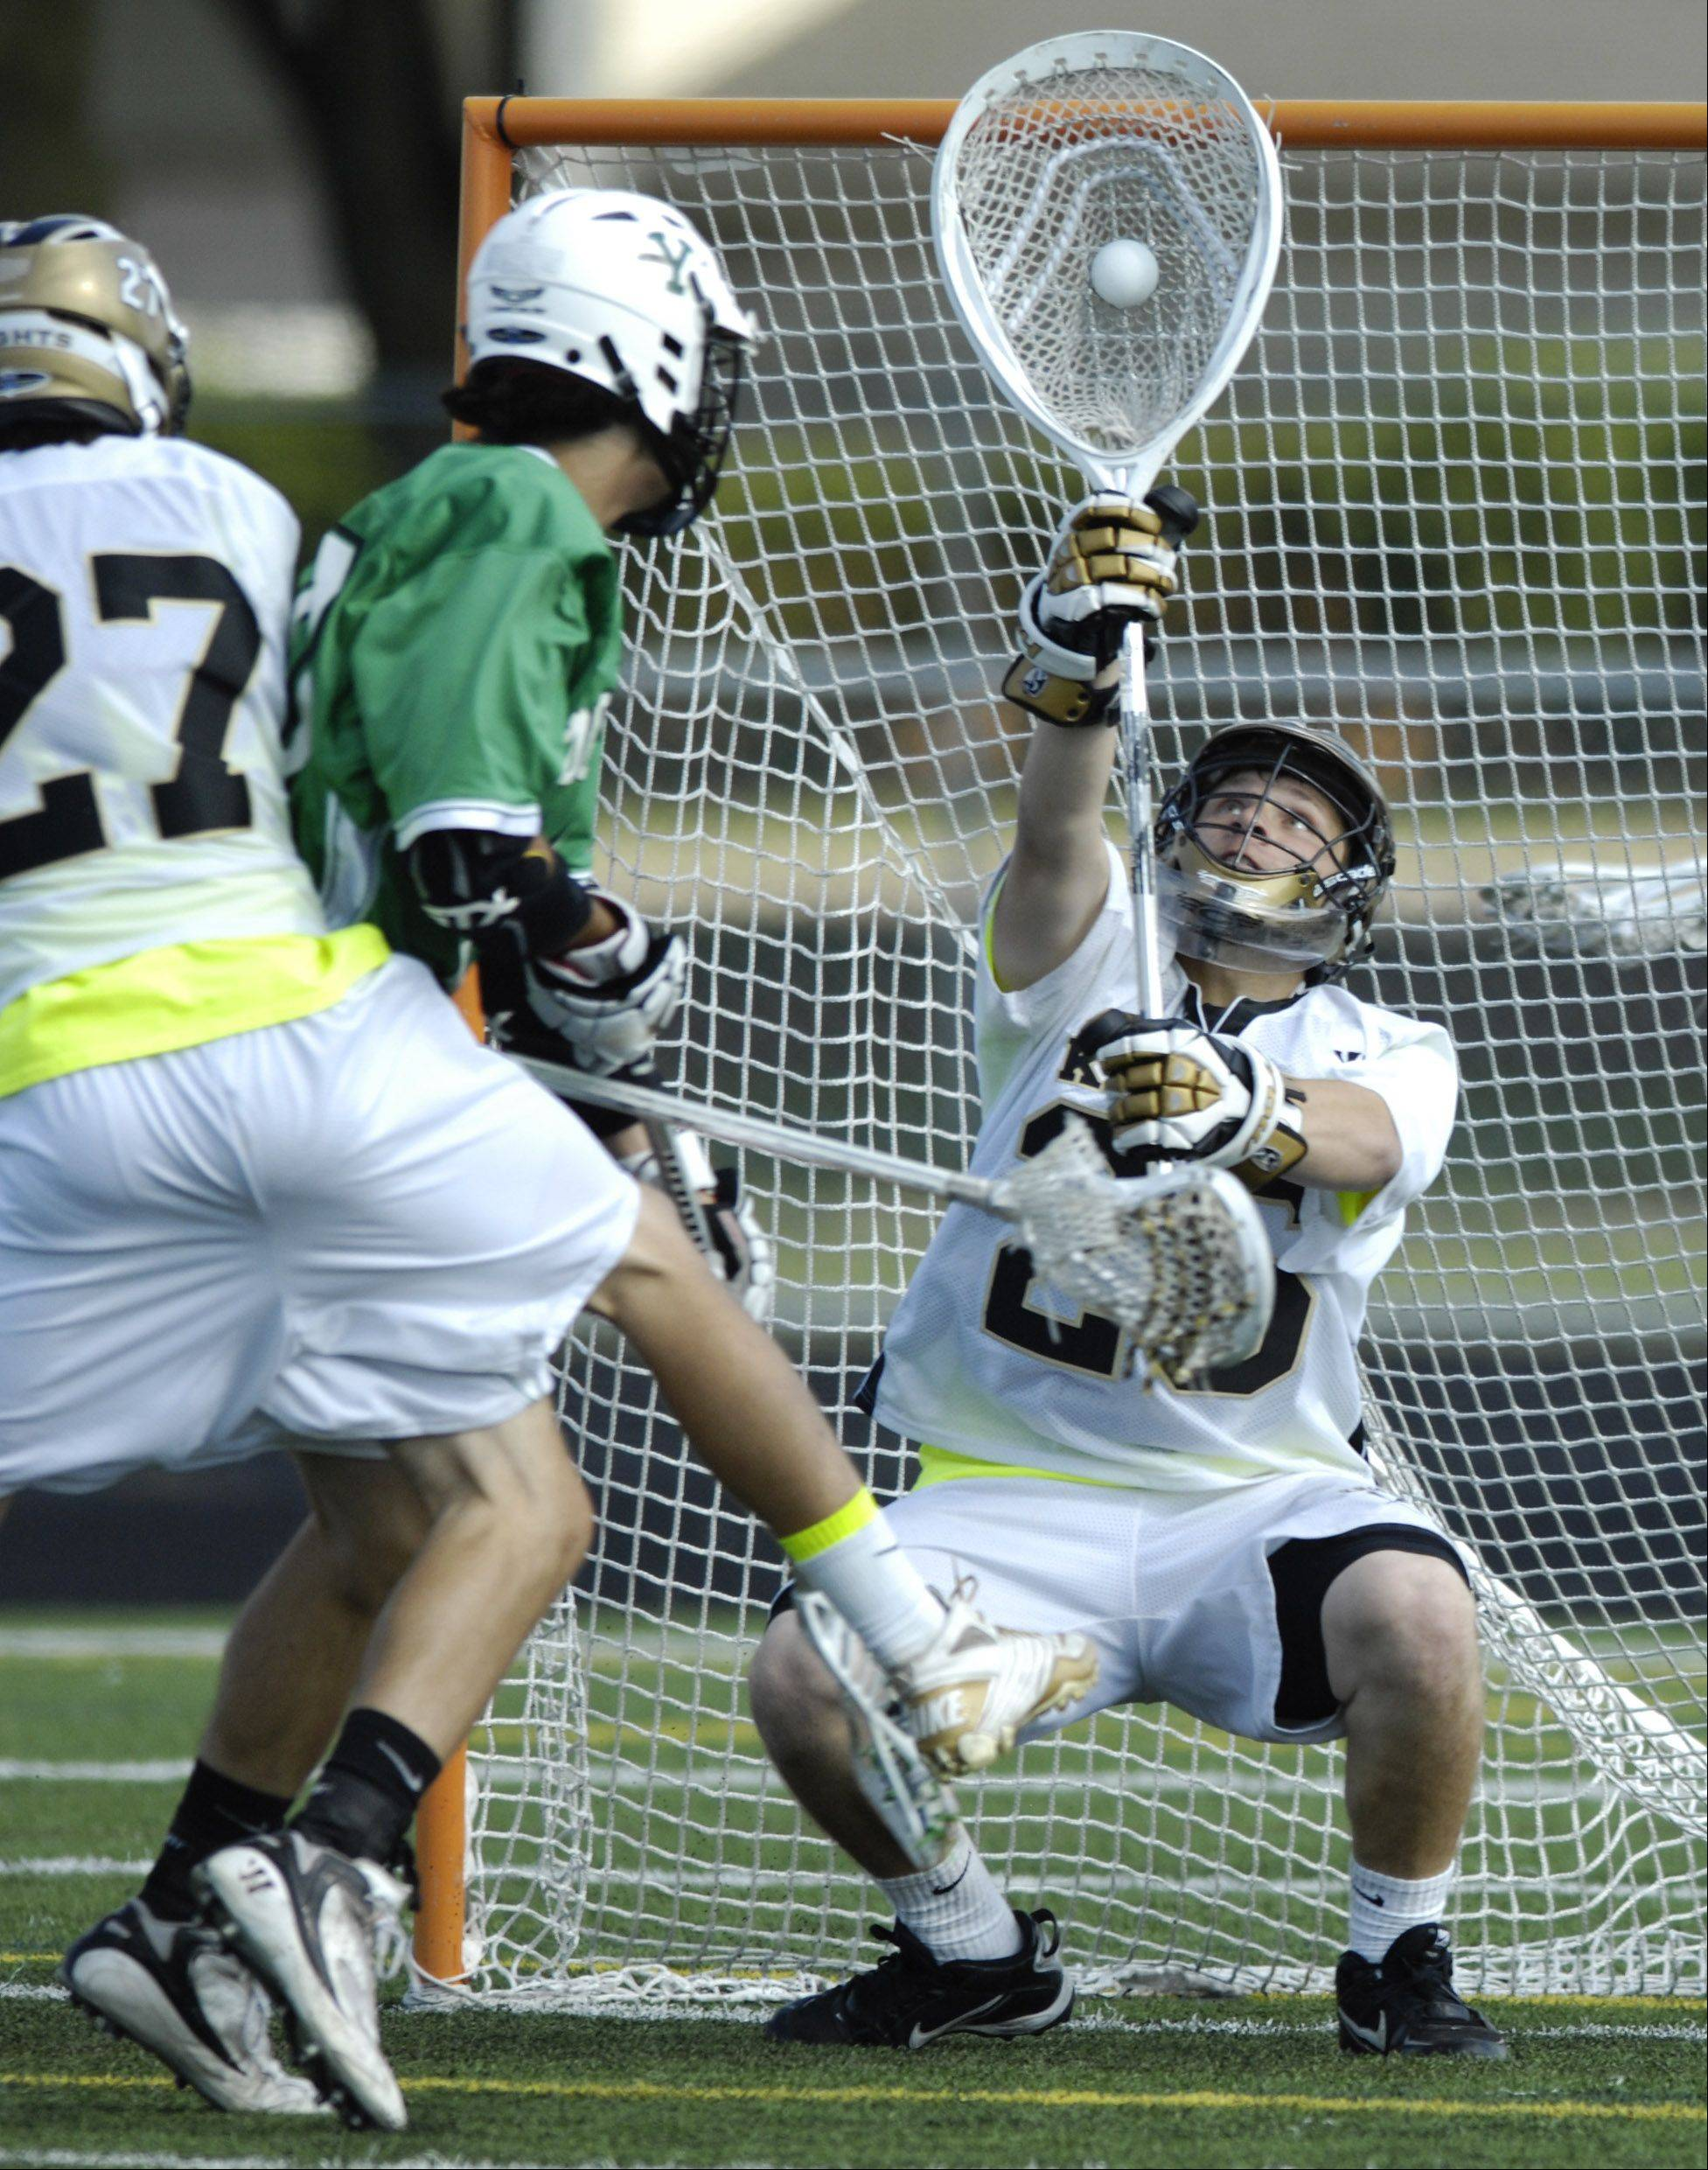 Grayslake North goalie Eric York reaches up to make a save during The Lacrosse Cup championship game against the York Dukes at Palatine High School Saturday.